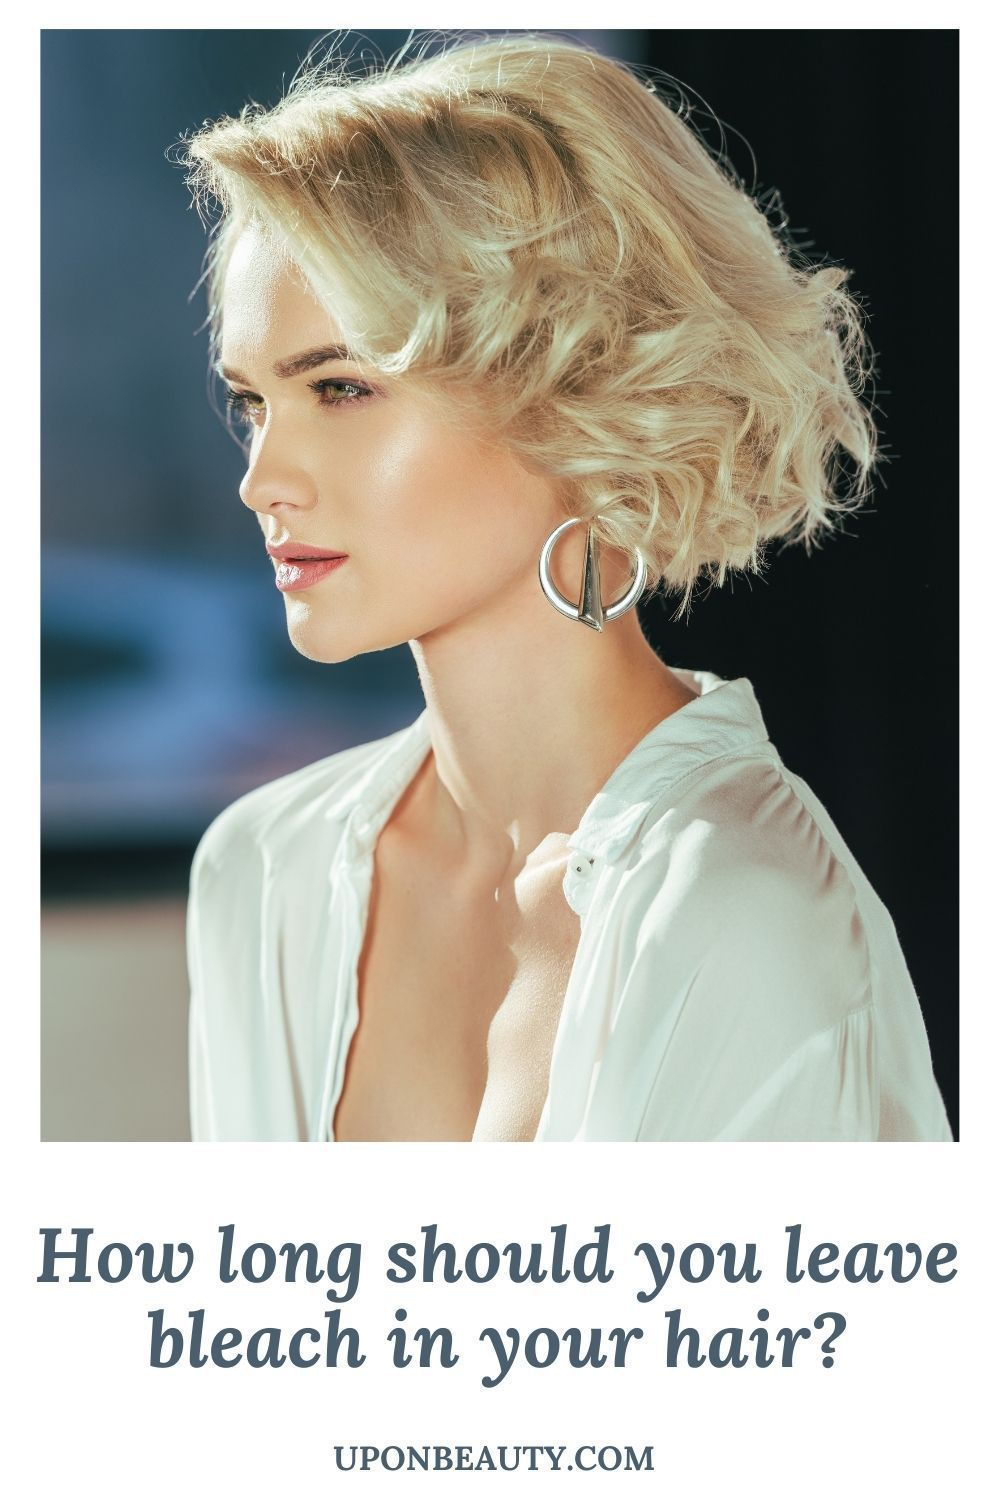 How Long Should You Leave Bleach In Your Hair Up On Beauty In 2020 Bleached Hair Up Hairstyles Your Hair